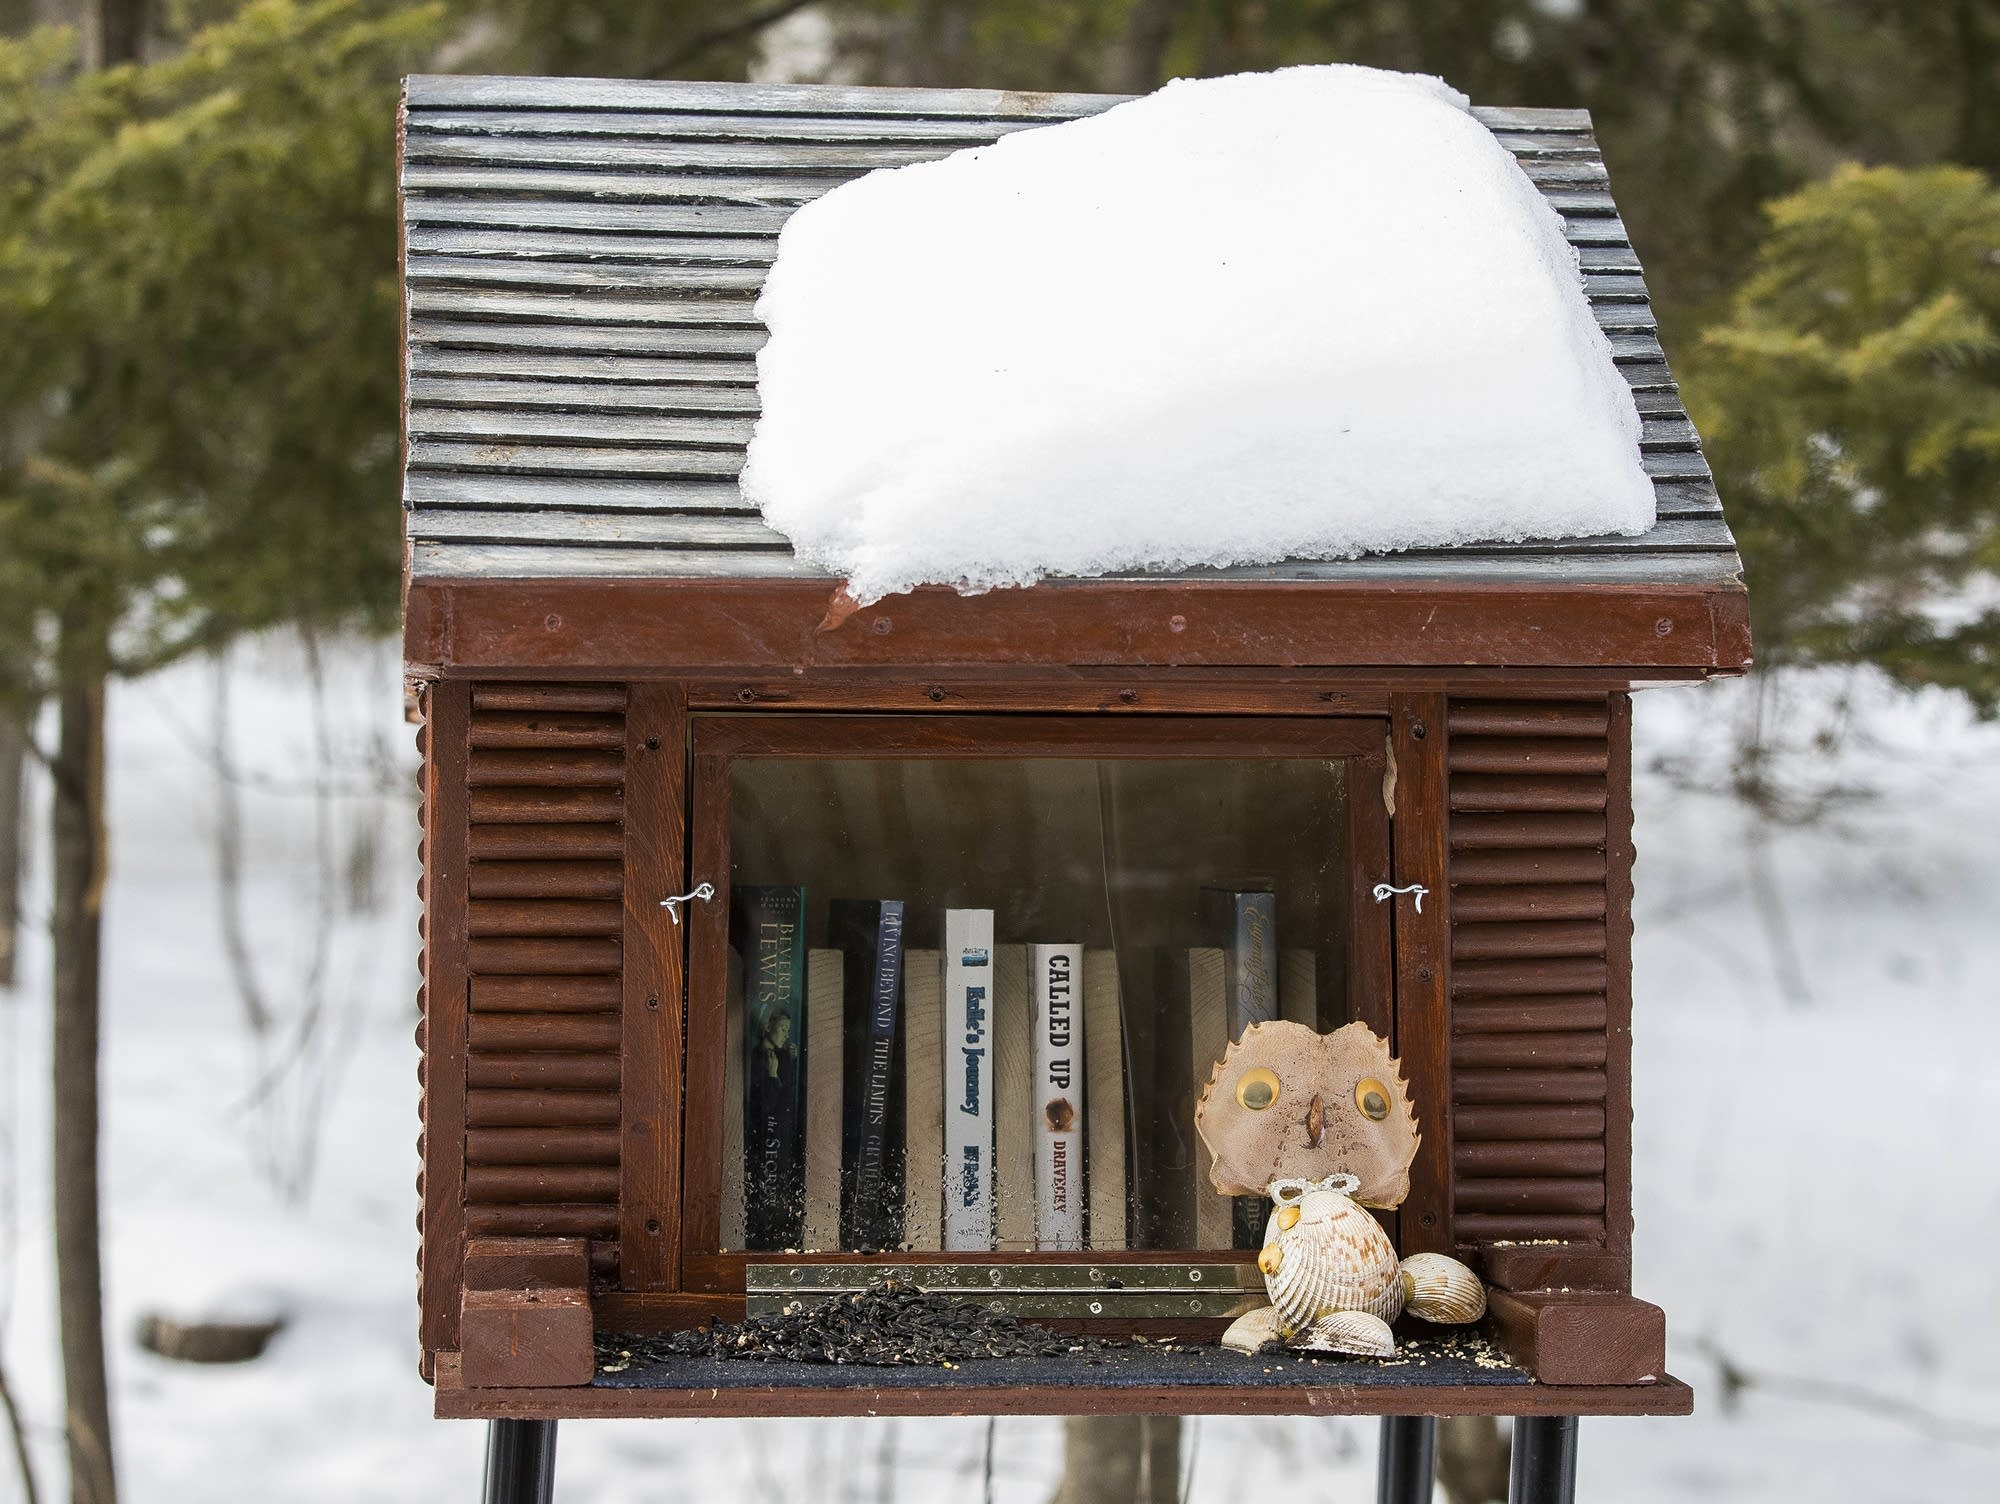 A Little Free Library-themed feeder at Loretta's